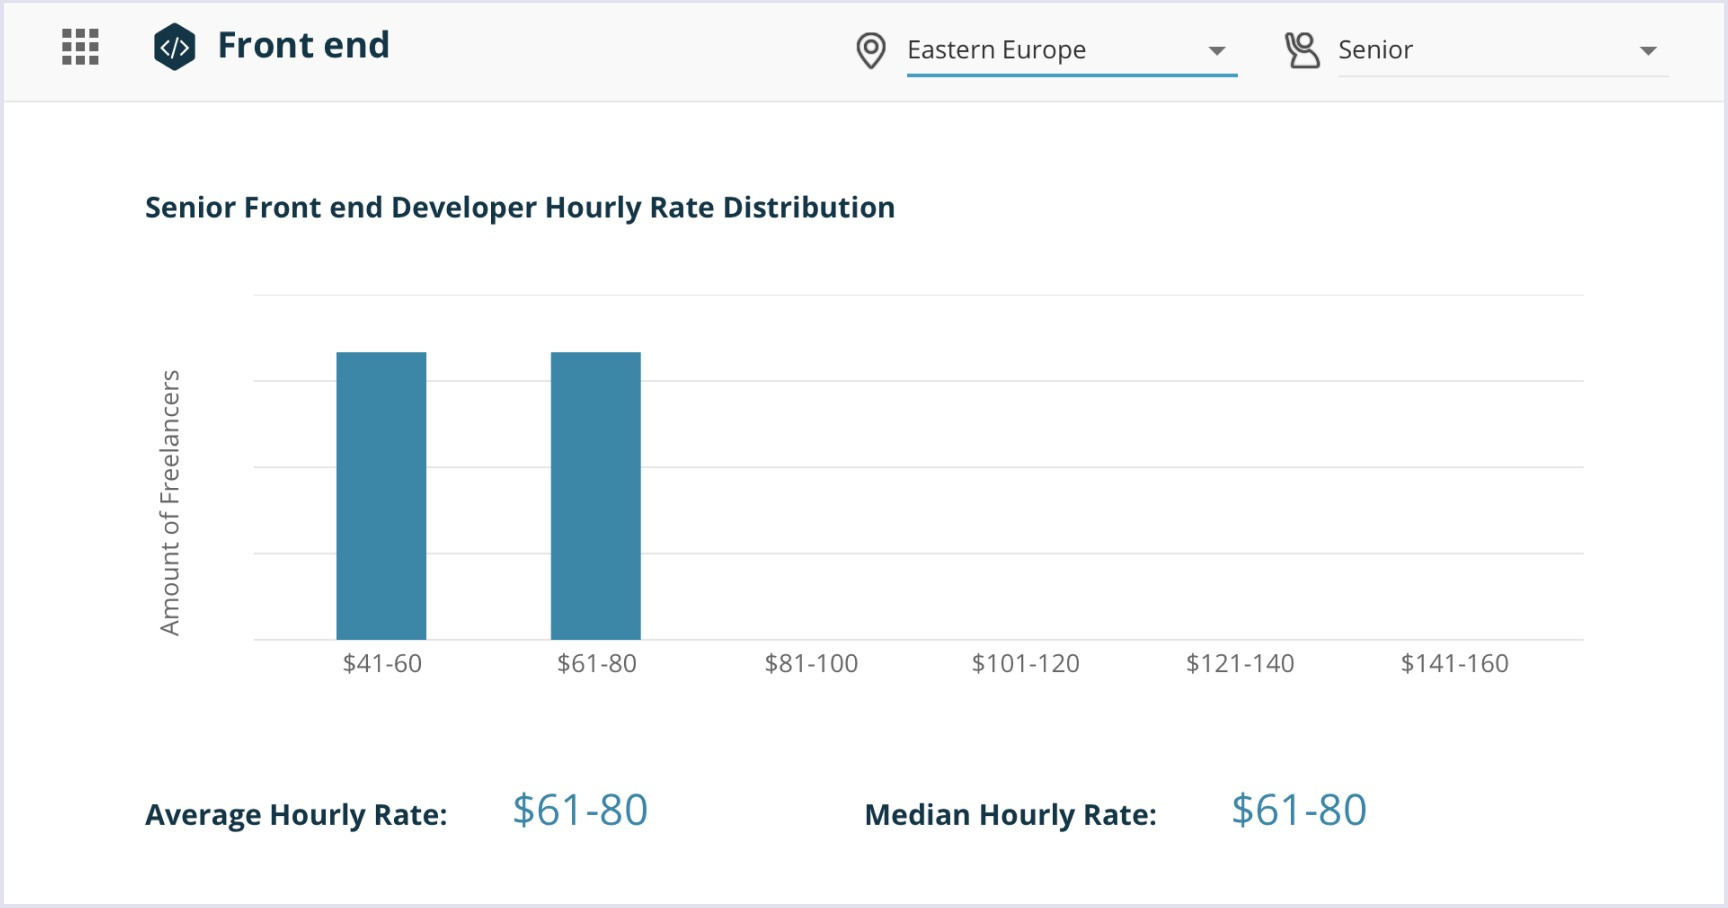 Senior front end developer hourly rate distribution in Eastern Europe